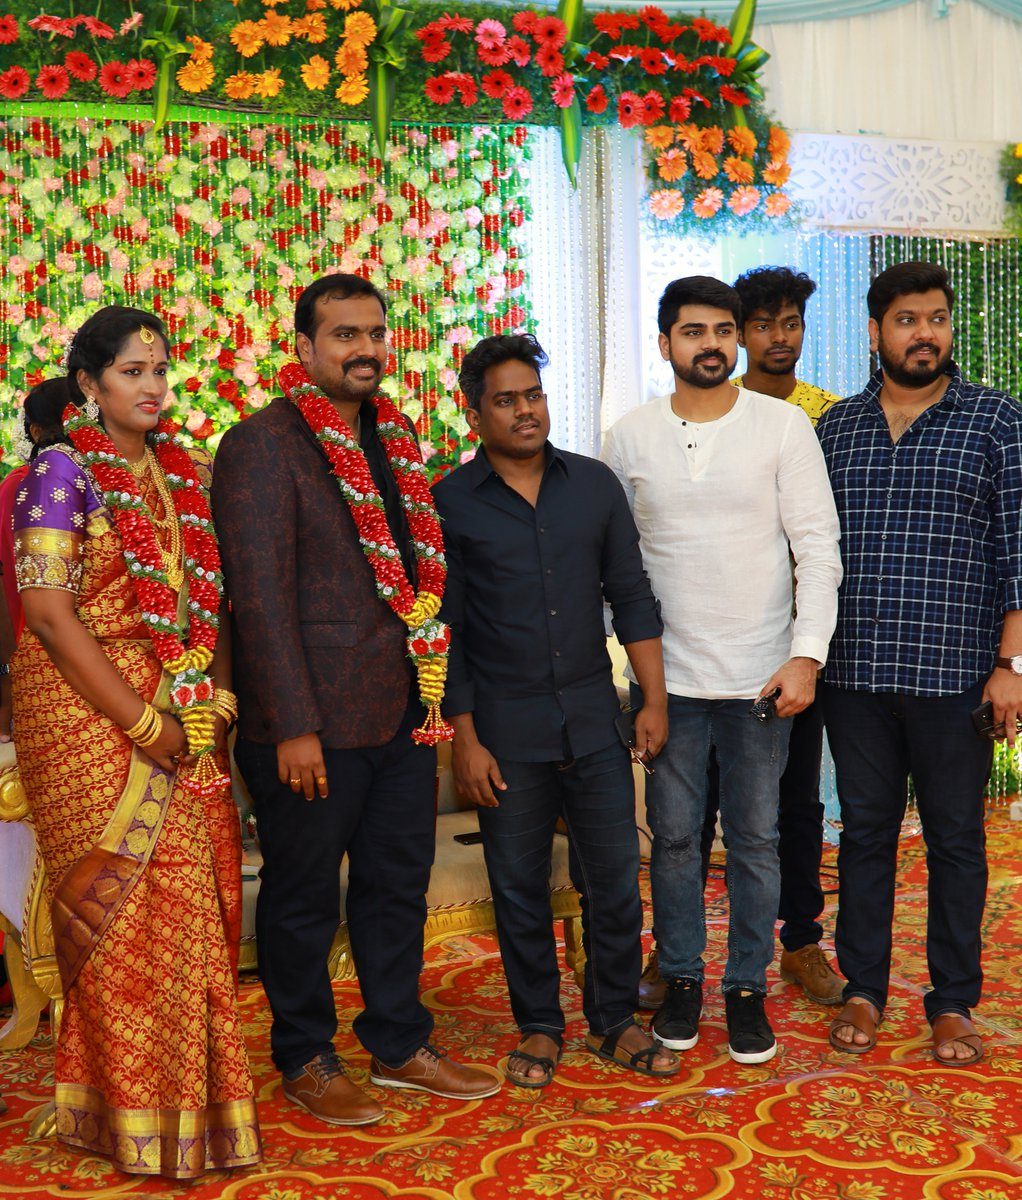 Happy Married Life, Mani Chandru (Director of #Alice) :) We wish you both a life filled with cheerfulness and bliss. May you enjoy all the happiness that life throws at you.  - @YSRfilms @U1Records | @thisisysr @irfanmalik83 https://t.co/786h416I22